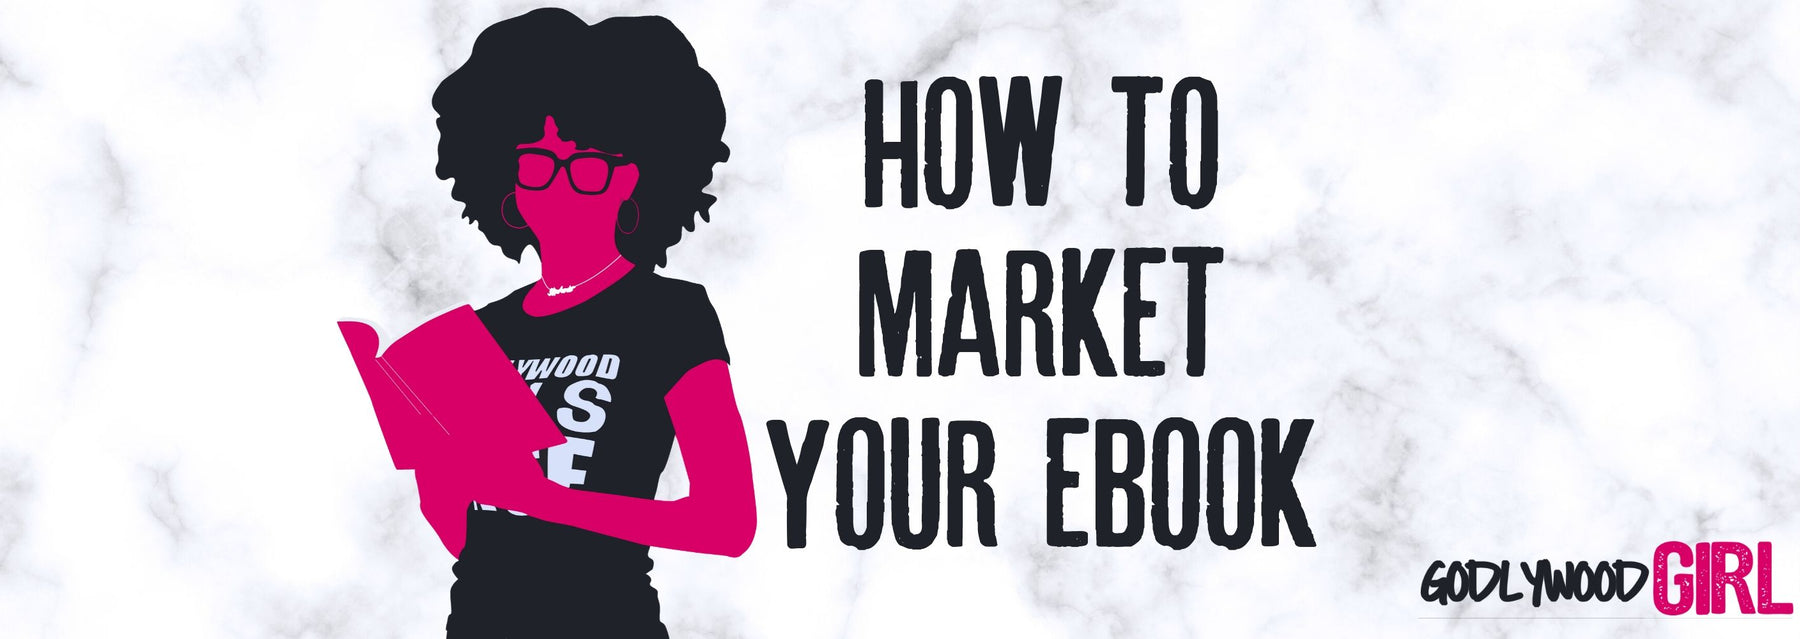 HOW TO MARKET AN EBOOK (How to market your book online) || The easiest book marketing tip ever!